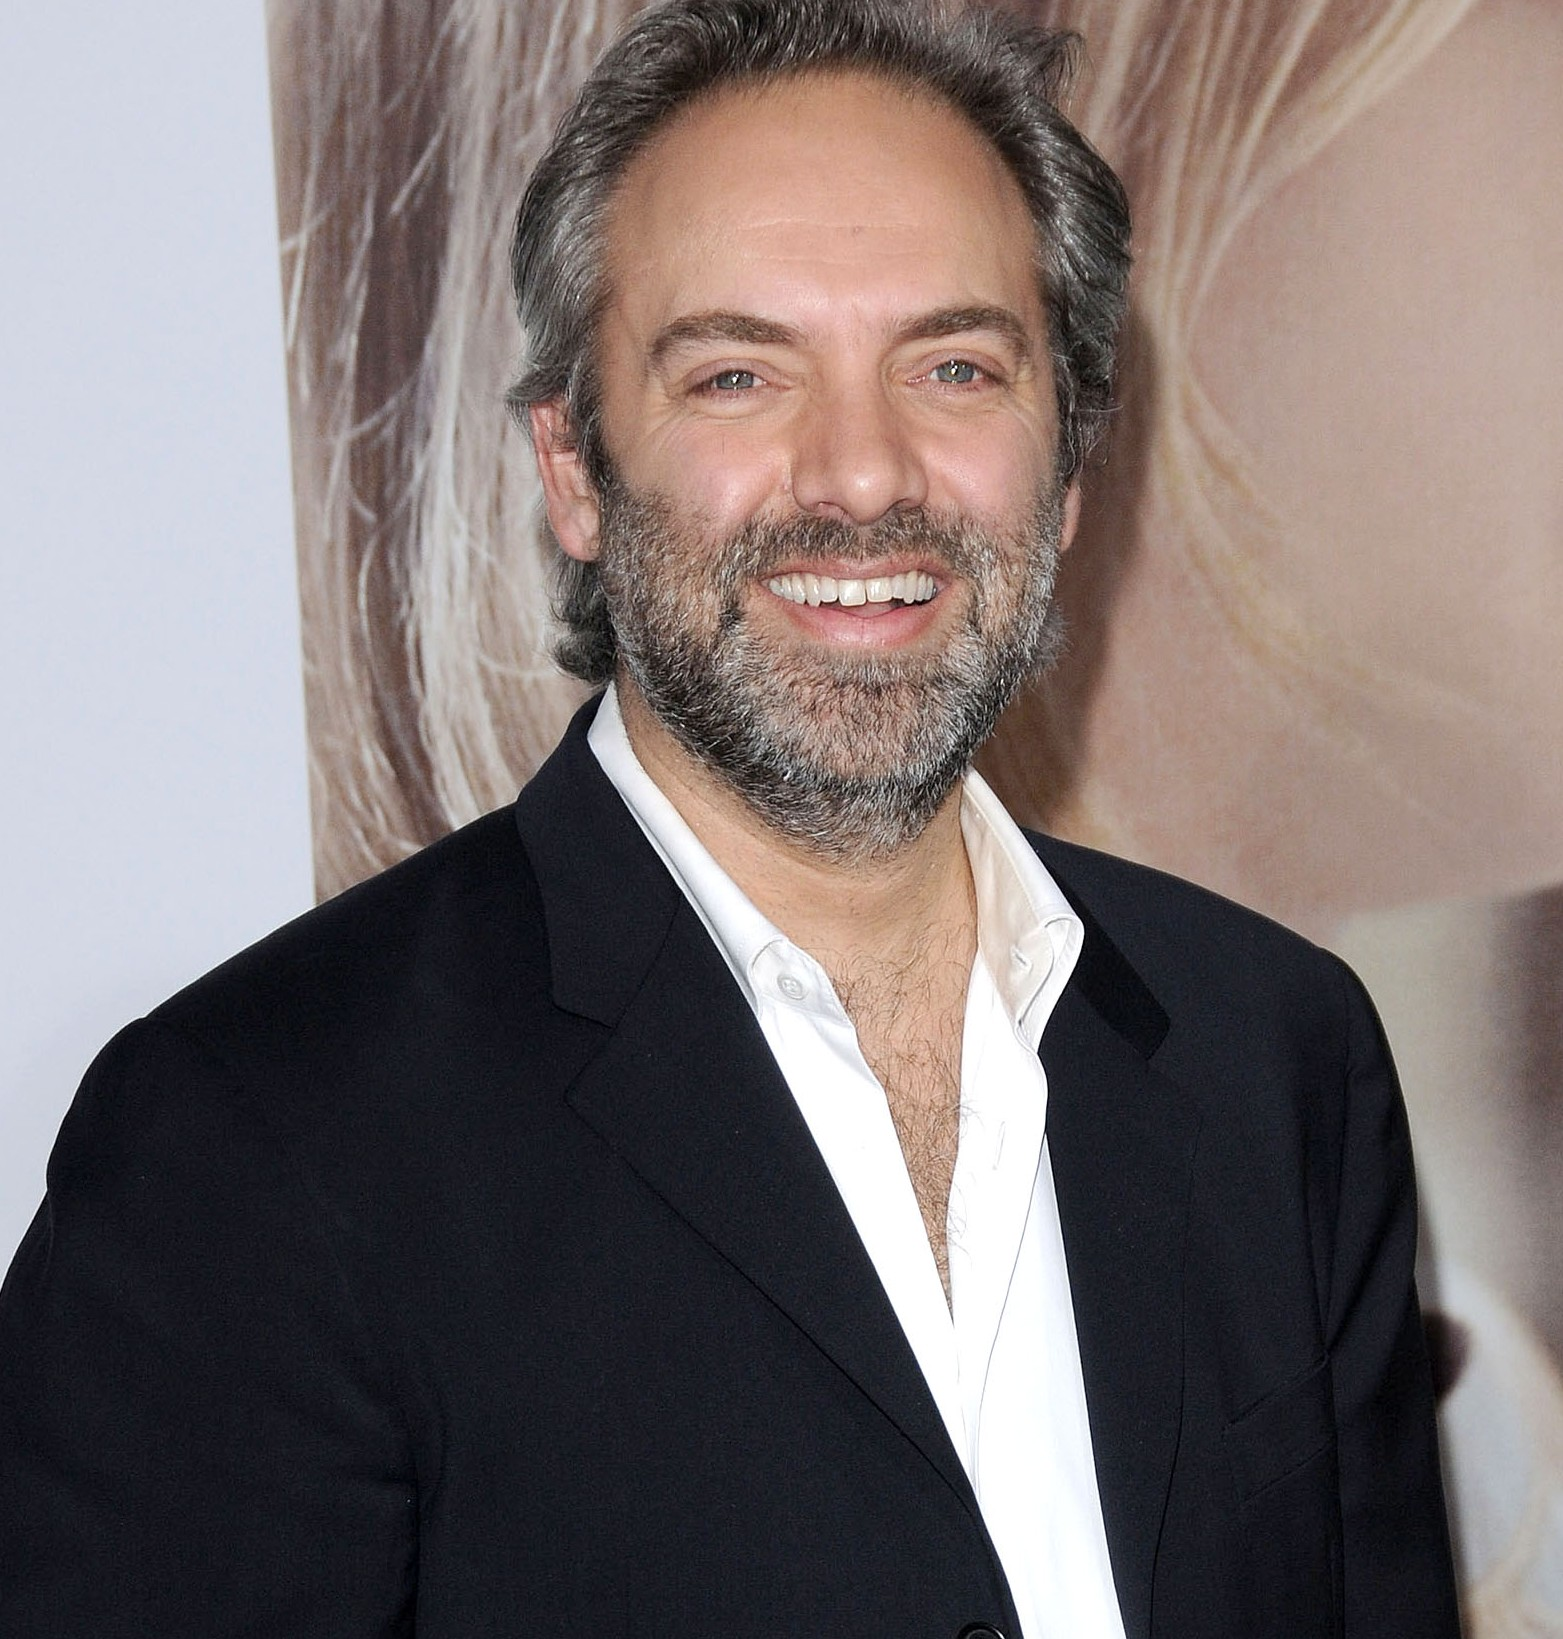 Sam Mendes won't direct Bond 24: 'It's been a very difficult decision'